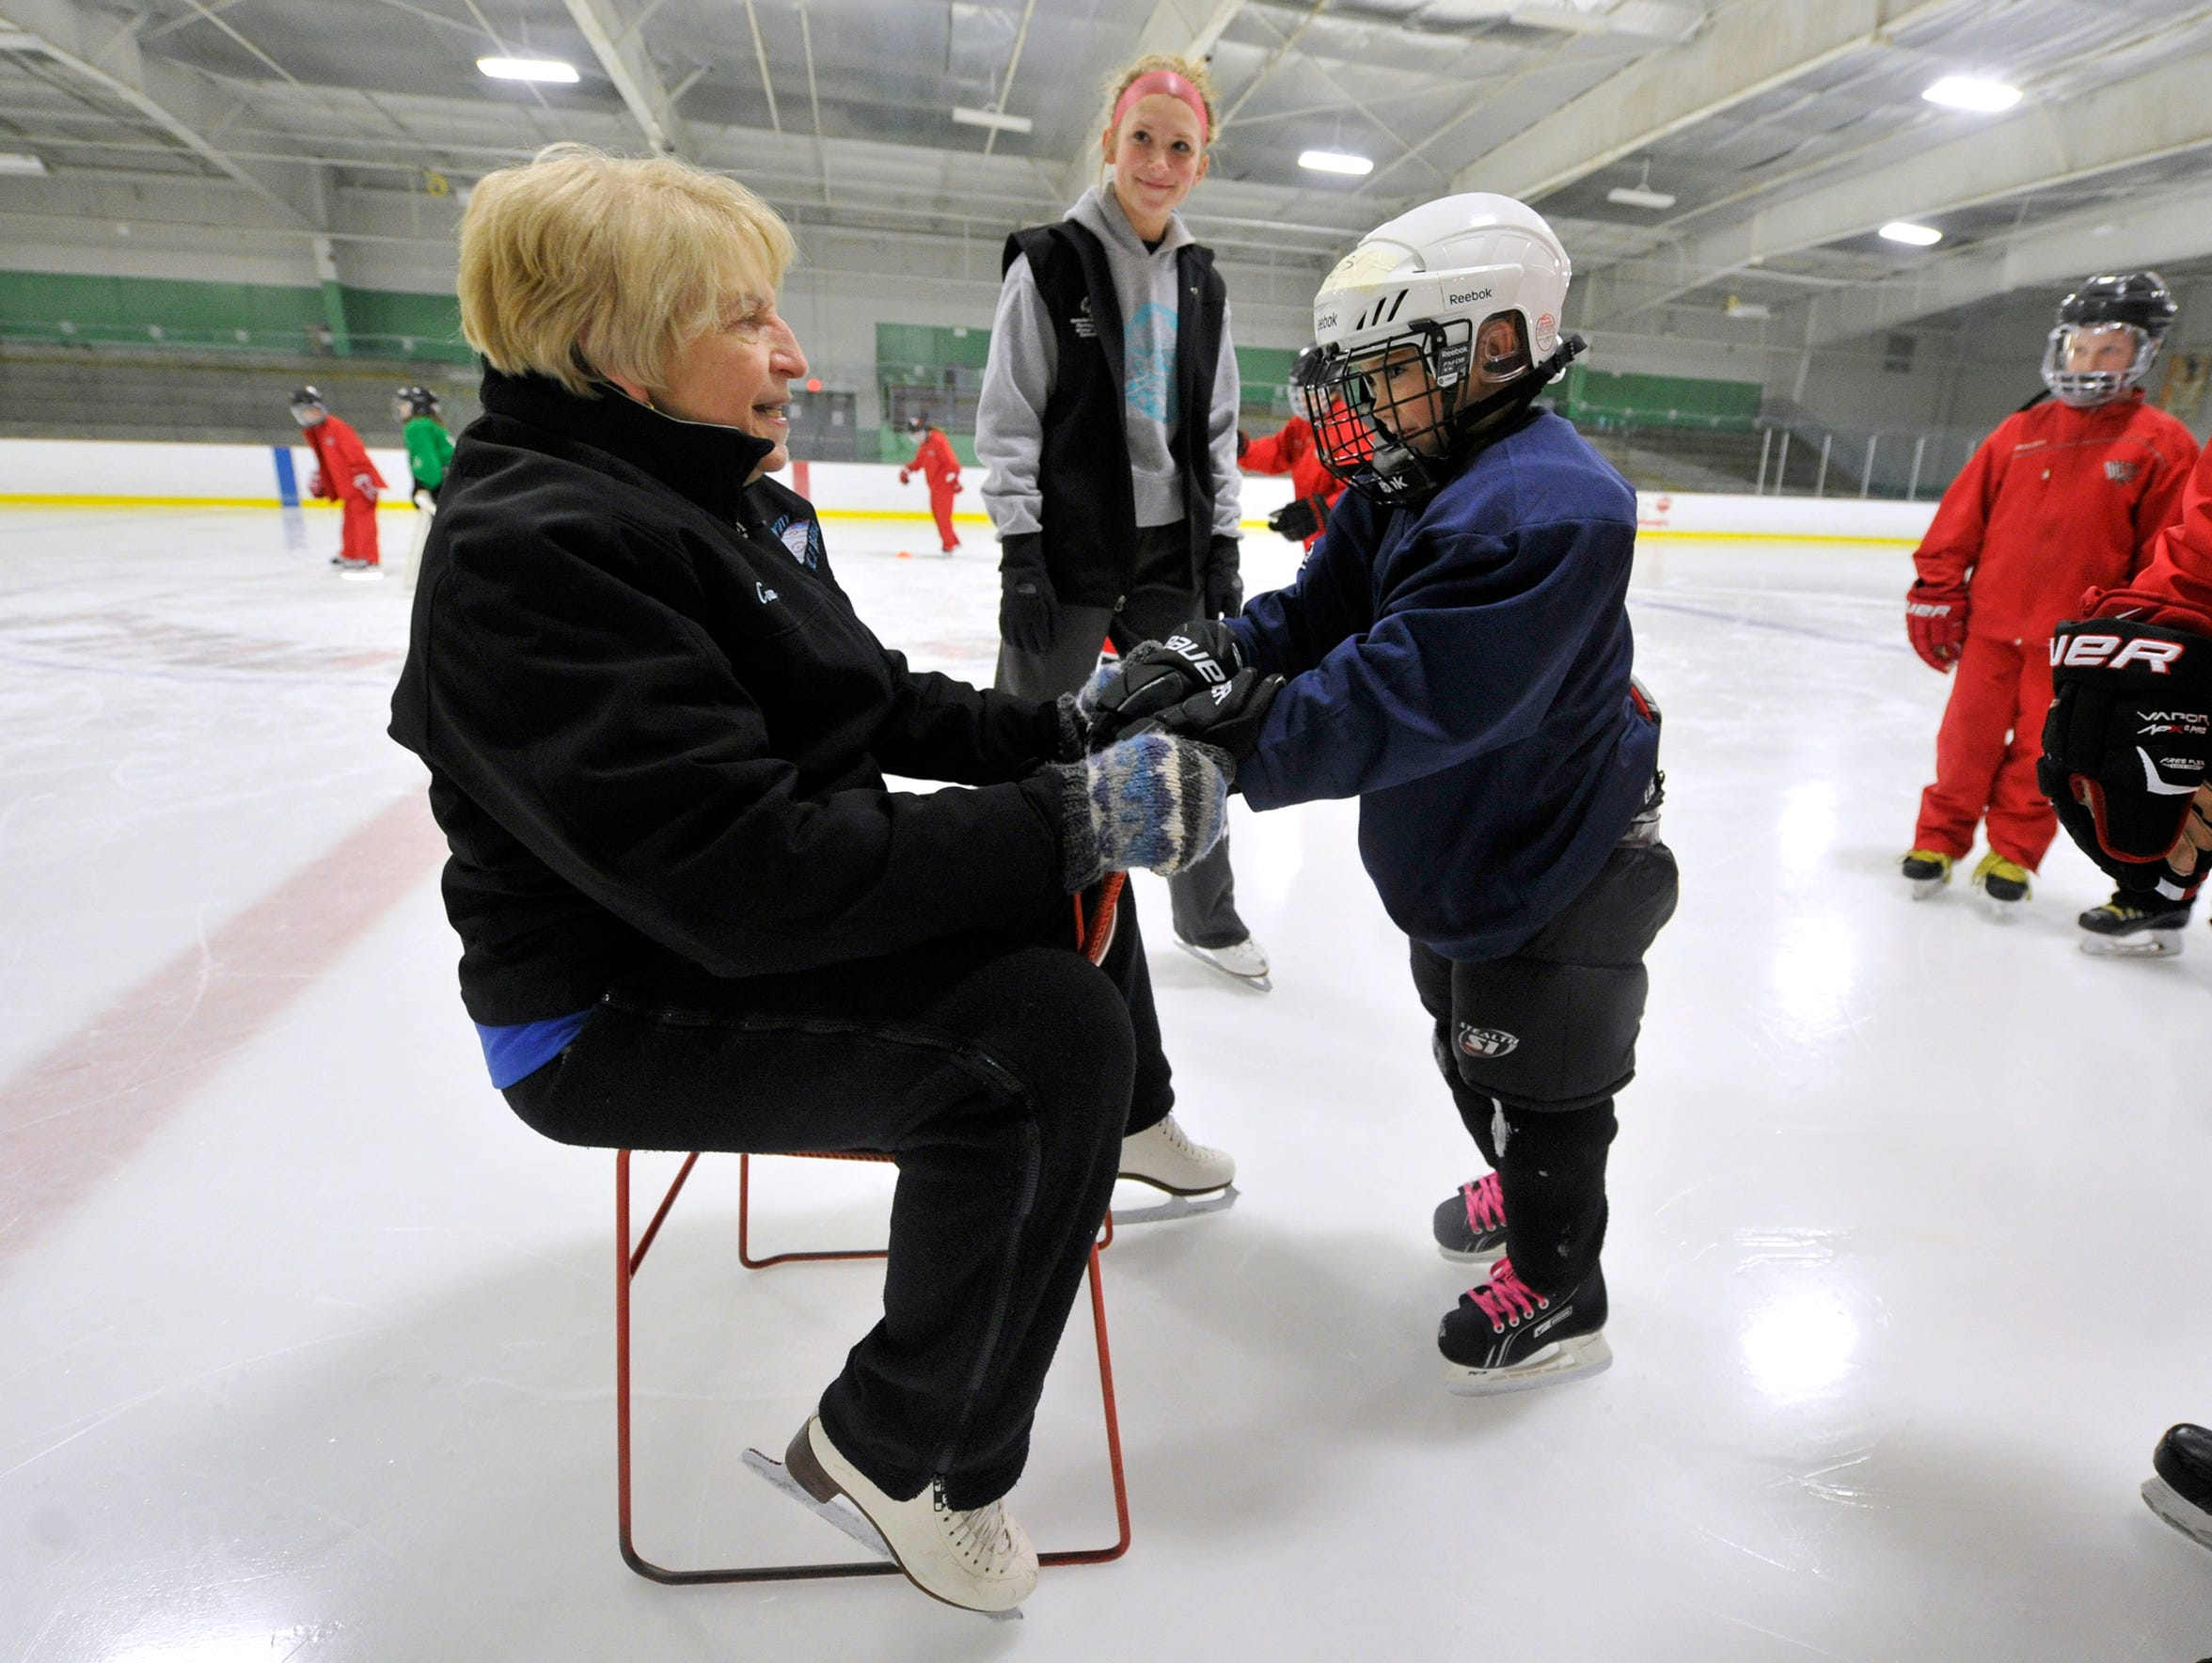 York City Ice Arena skating coach Lin Huber helps guide